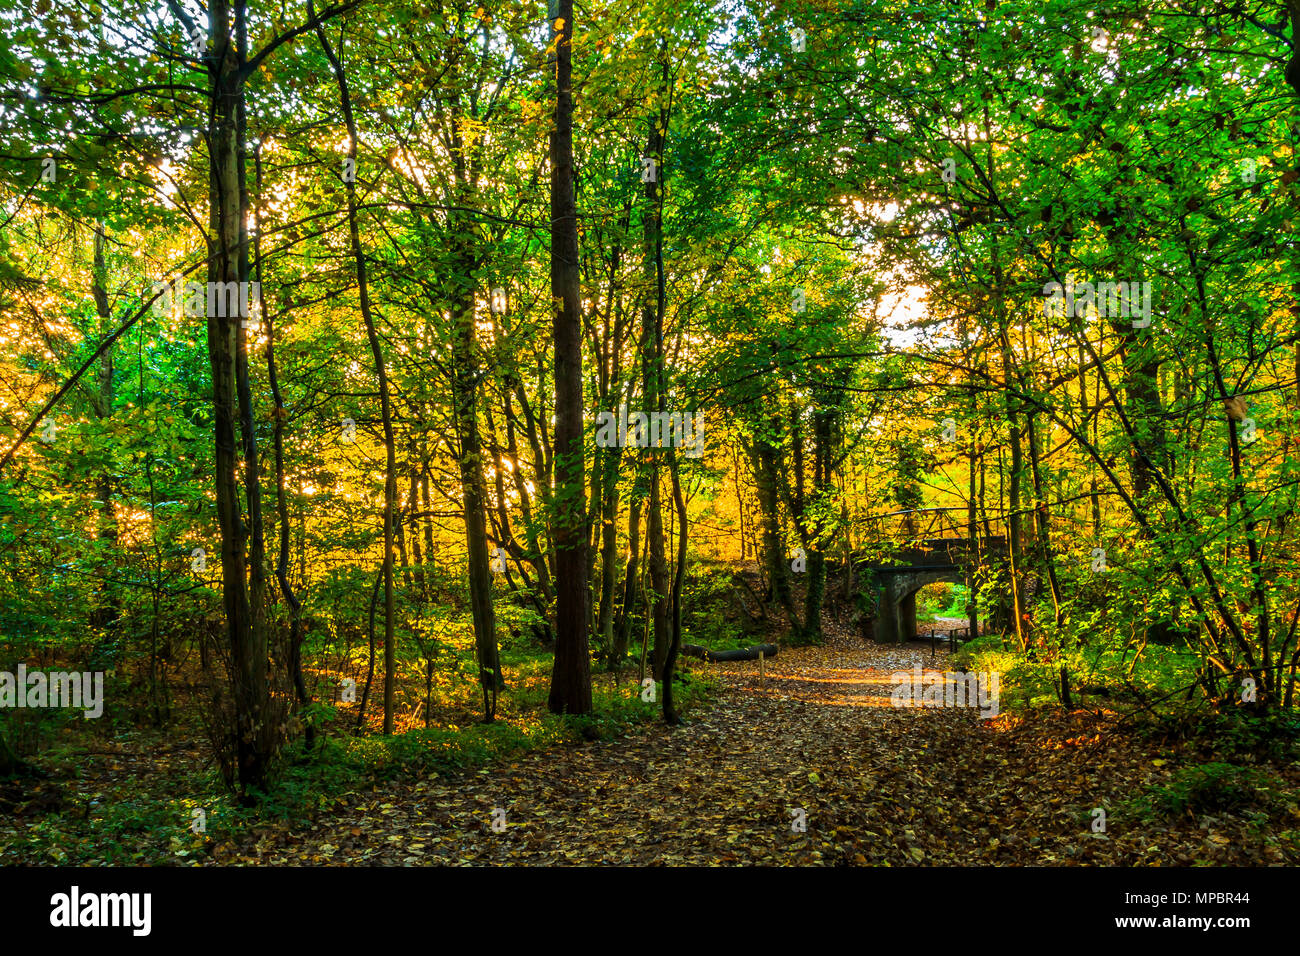 A bridge at Baggeridge Country Park in the West Midlands. - Stock Image